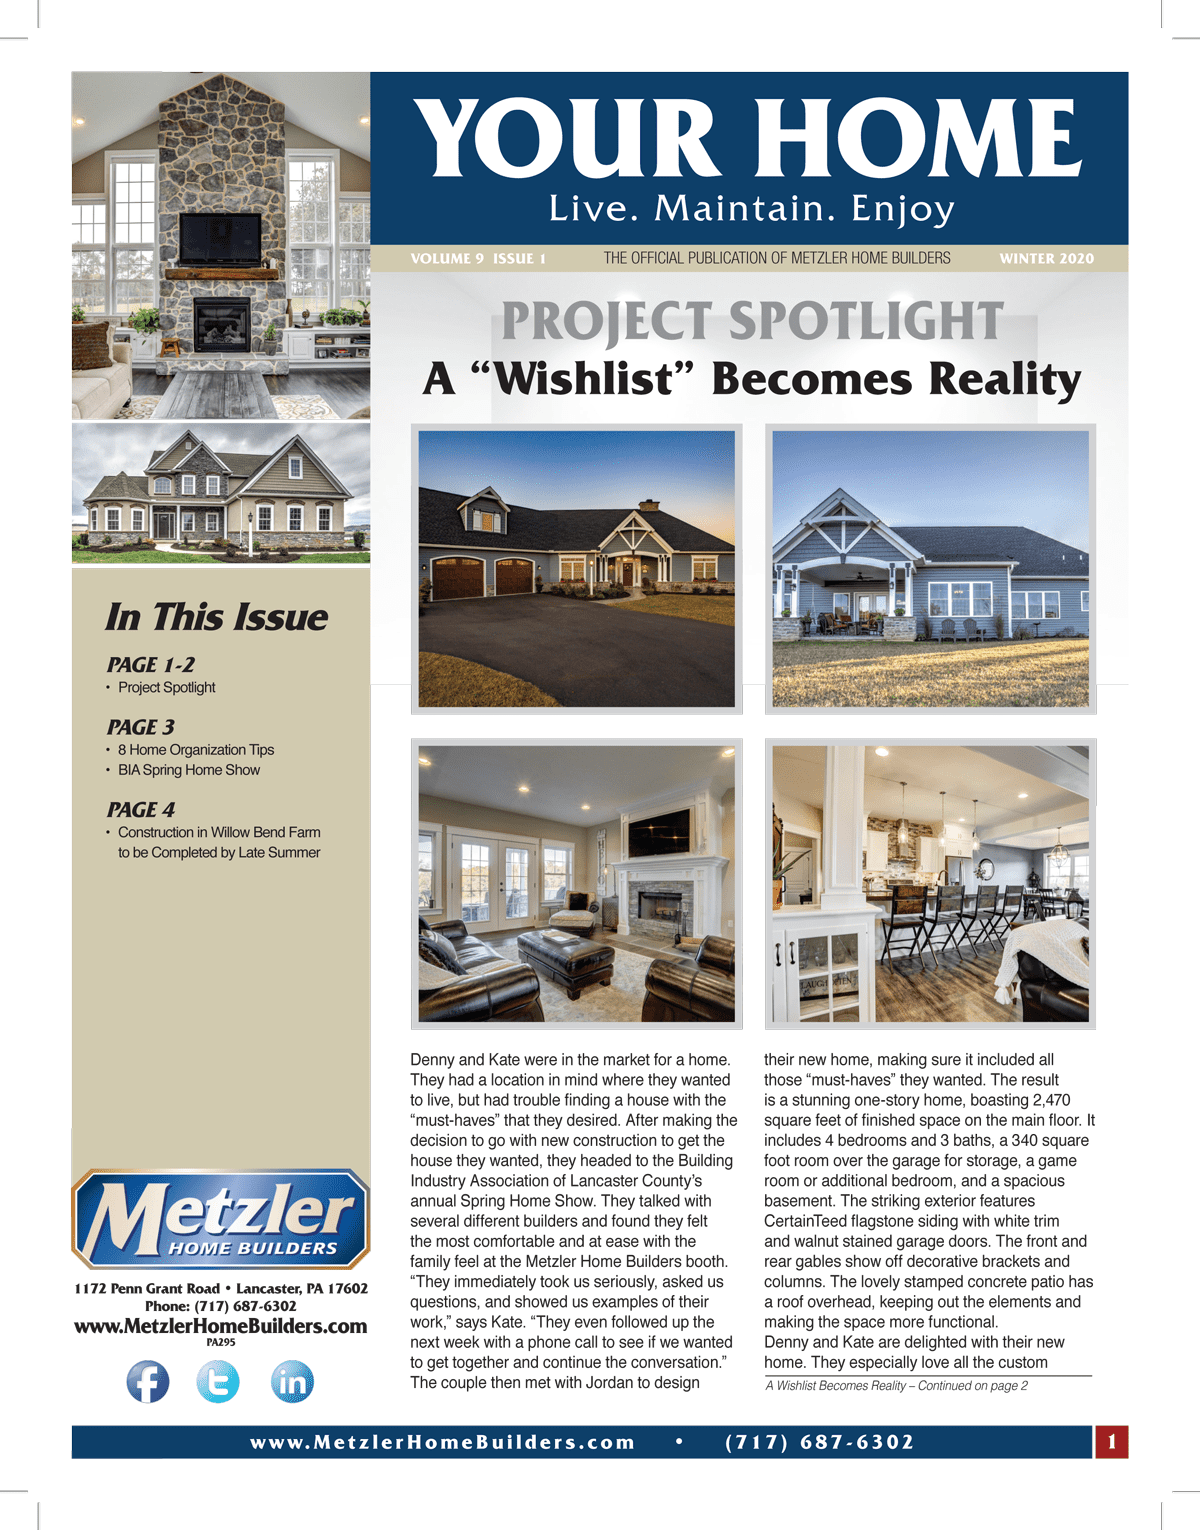 Metzler 'Your Home' Newsletter PDF cover for Volume 9 Issue 1